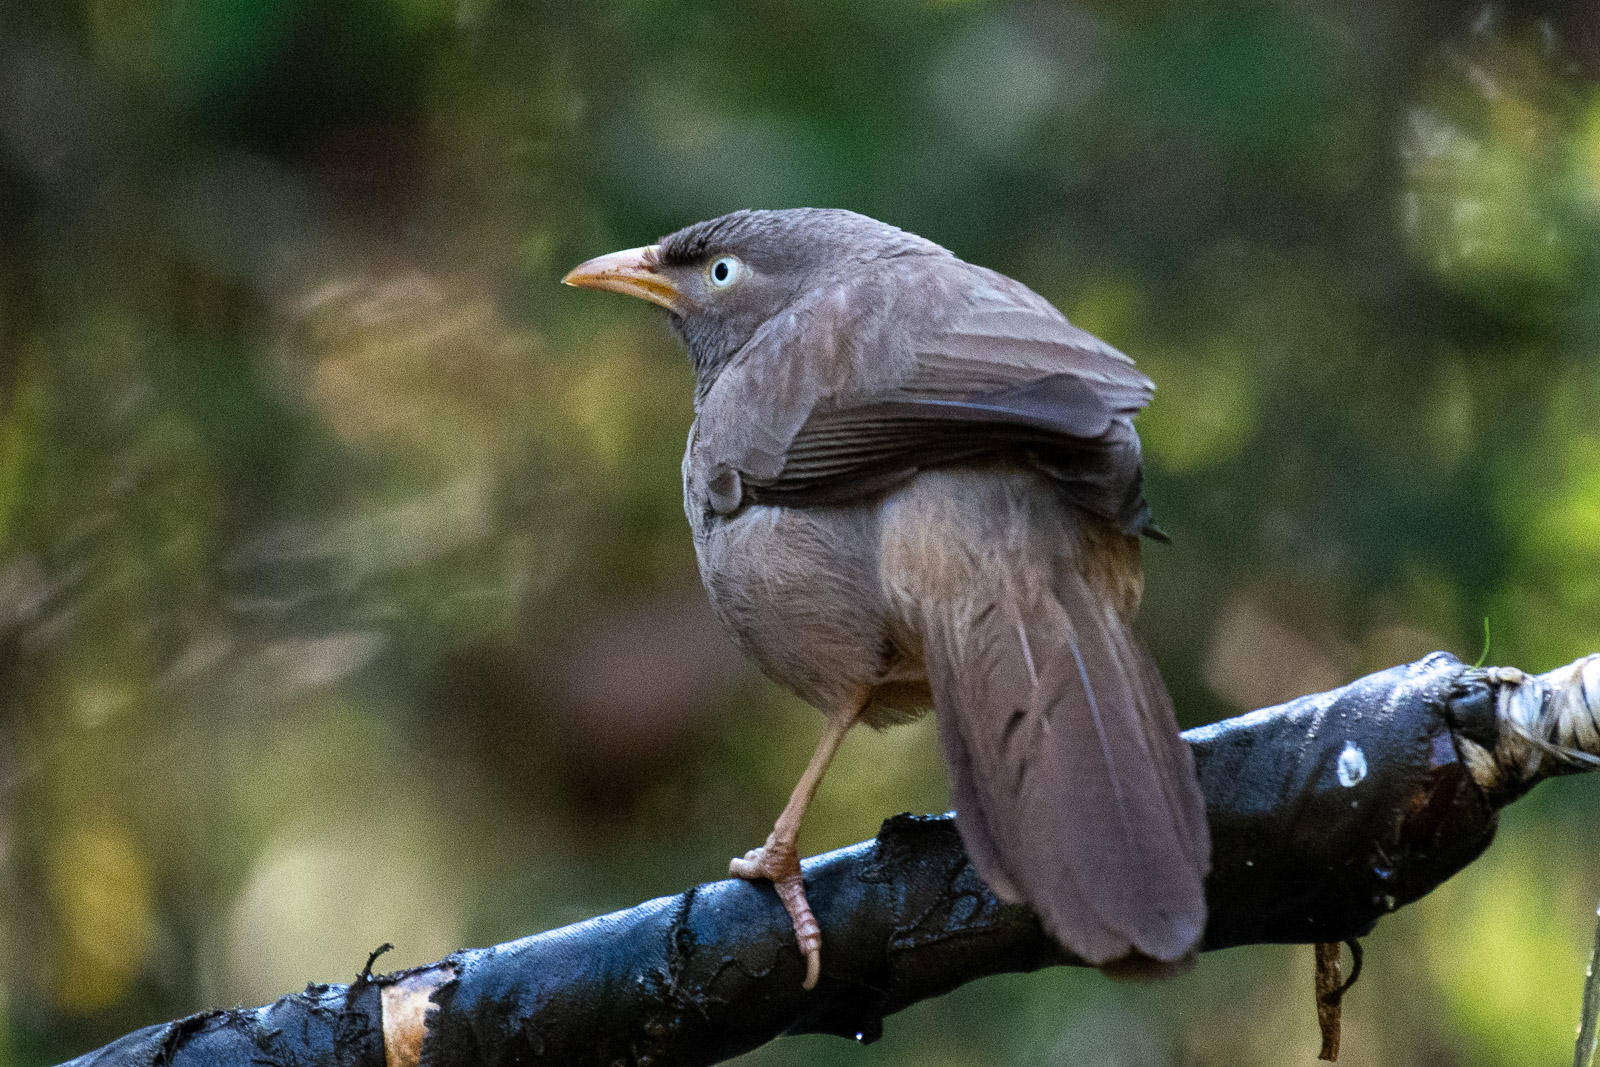 Image: Image of Warbler bird with Vibration Reduction OFF. Feathers are not clearly visible Exif: 50...